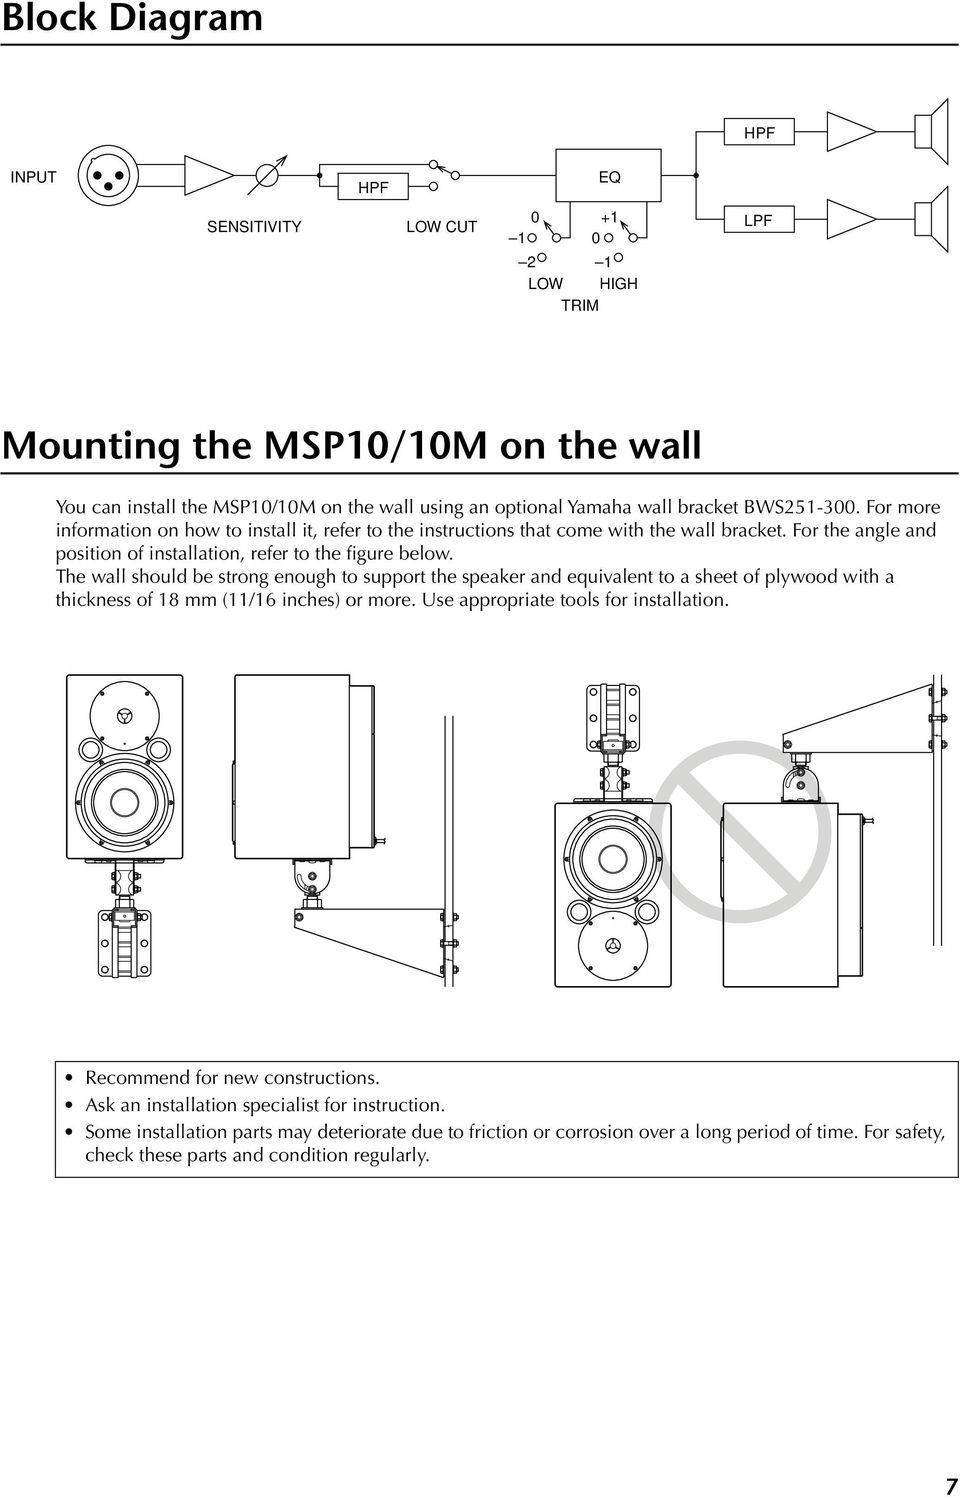 The wall should be strong enough to support the speaker and equivalent to a sheet of plywood with a thickness of 18 mm (11/16 inches) or more. Use appropriate tools for installation.